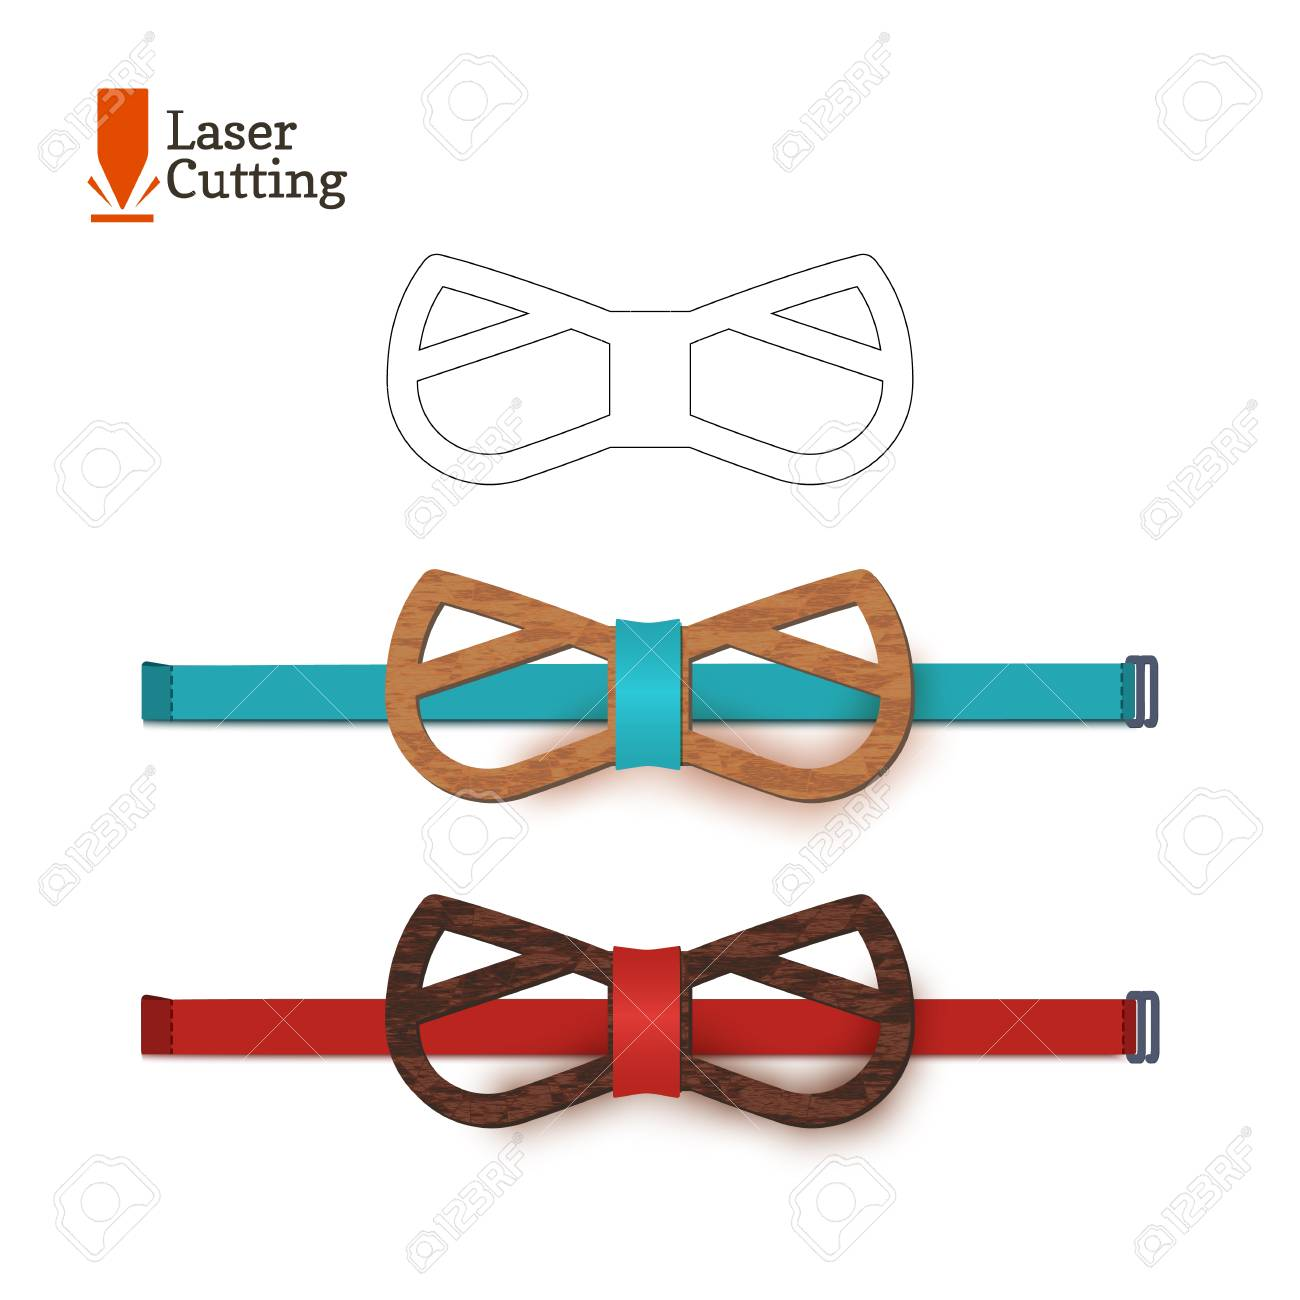 Laser Cut Bow Tie Template For DIY. Vector Silhouette With Cute Cat Ears For